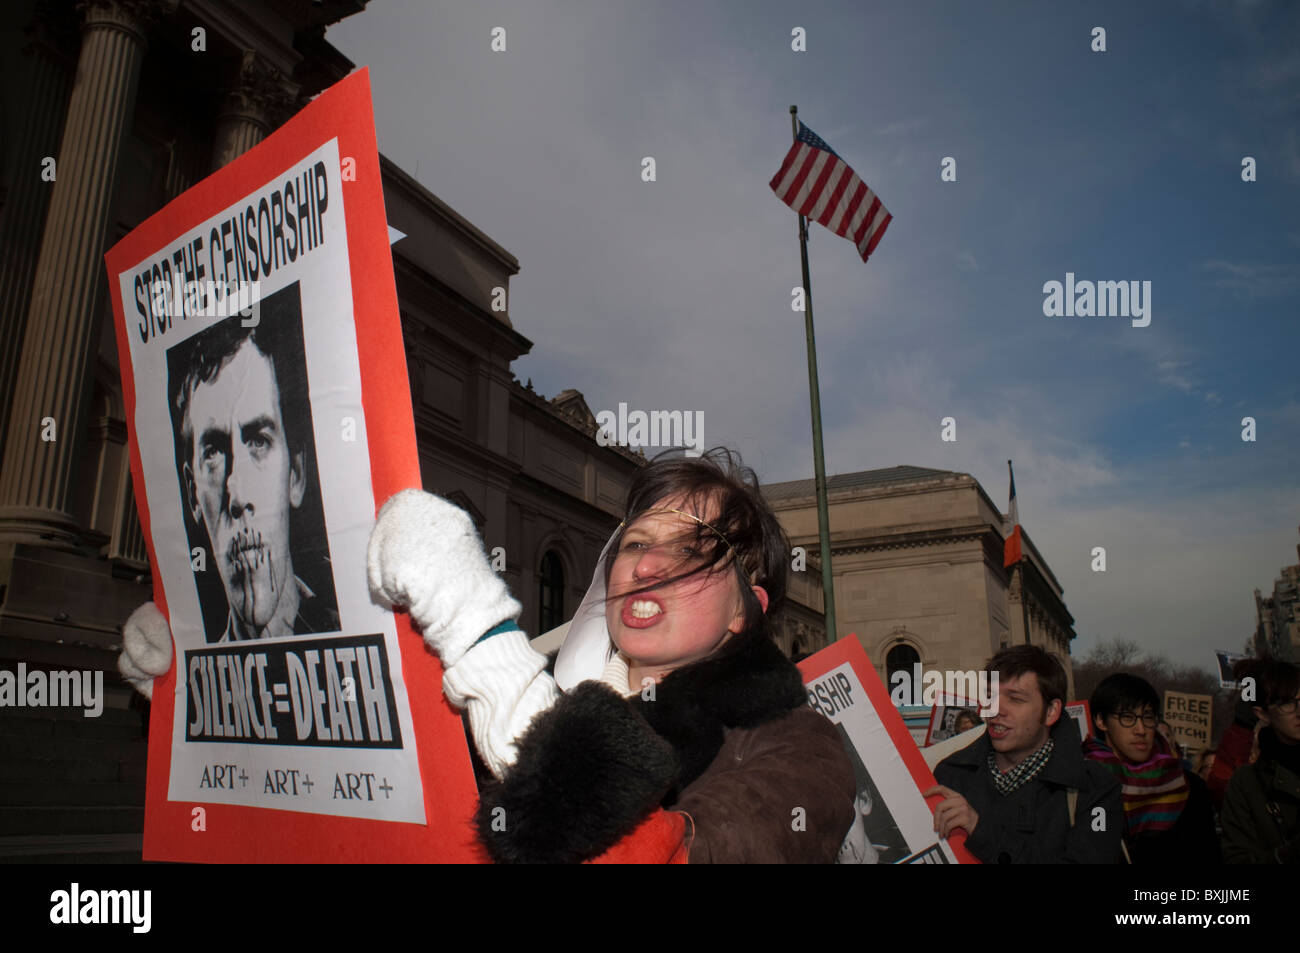 Protesters demonstrate in New York against the Smithsonian Institute pulling the David Wojnarowicz video - Stock Image